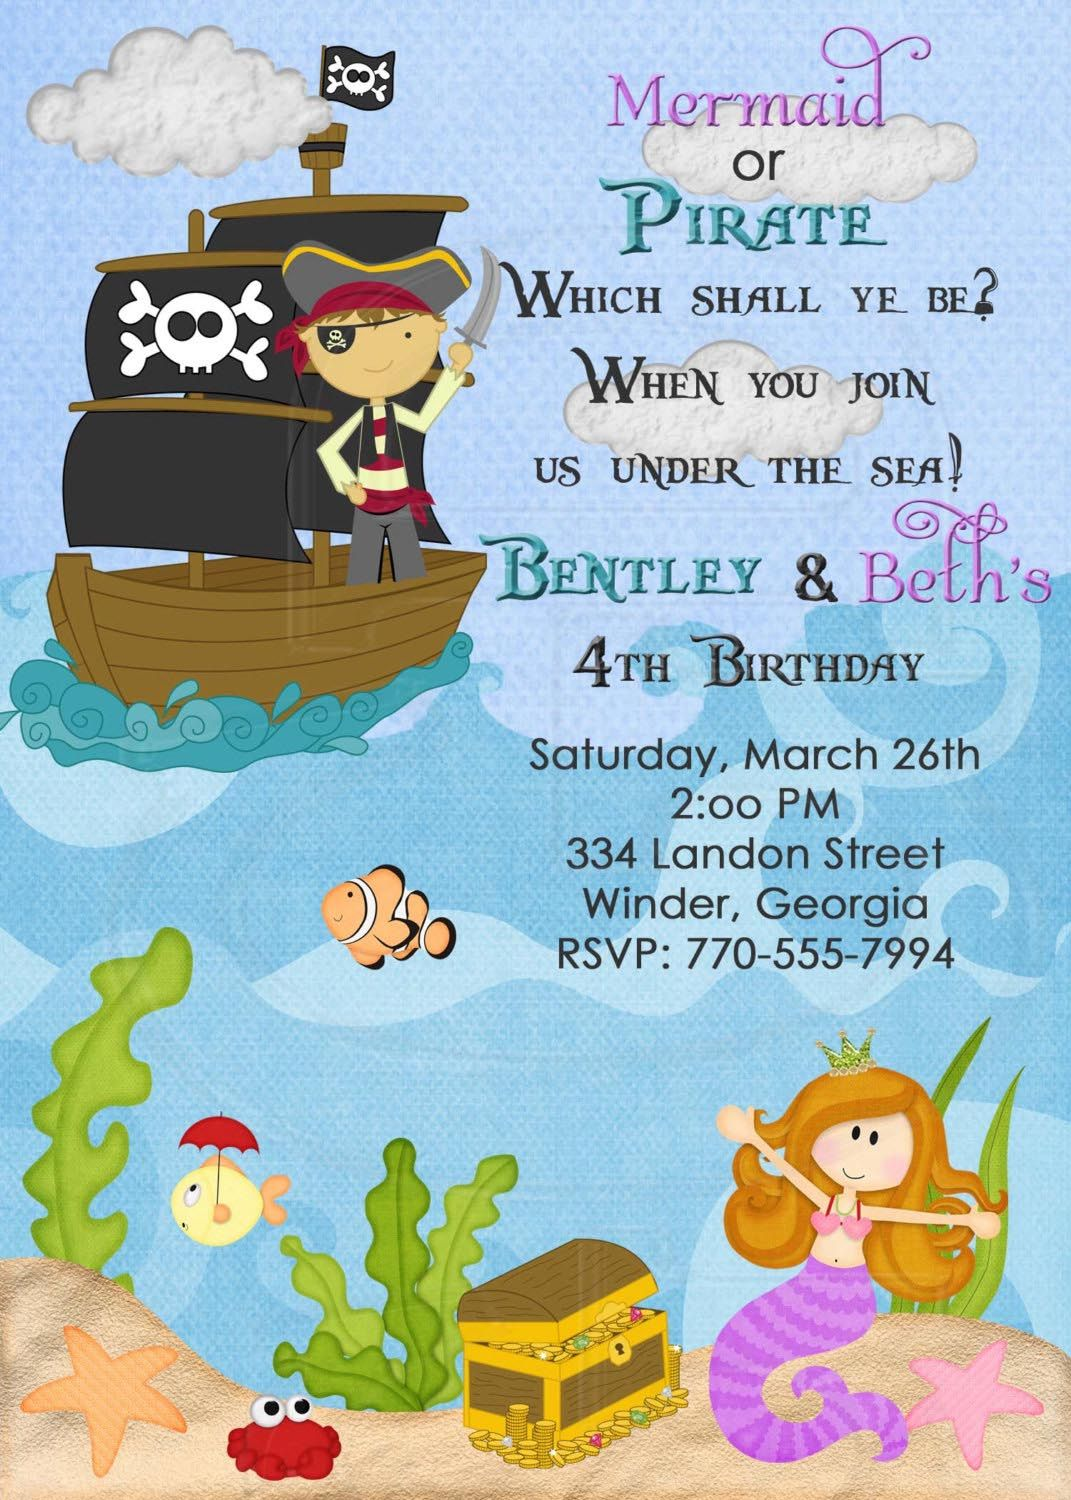 wording idea for the mermaid/pirate invites. If London and Britton ...